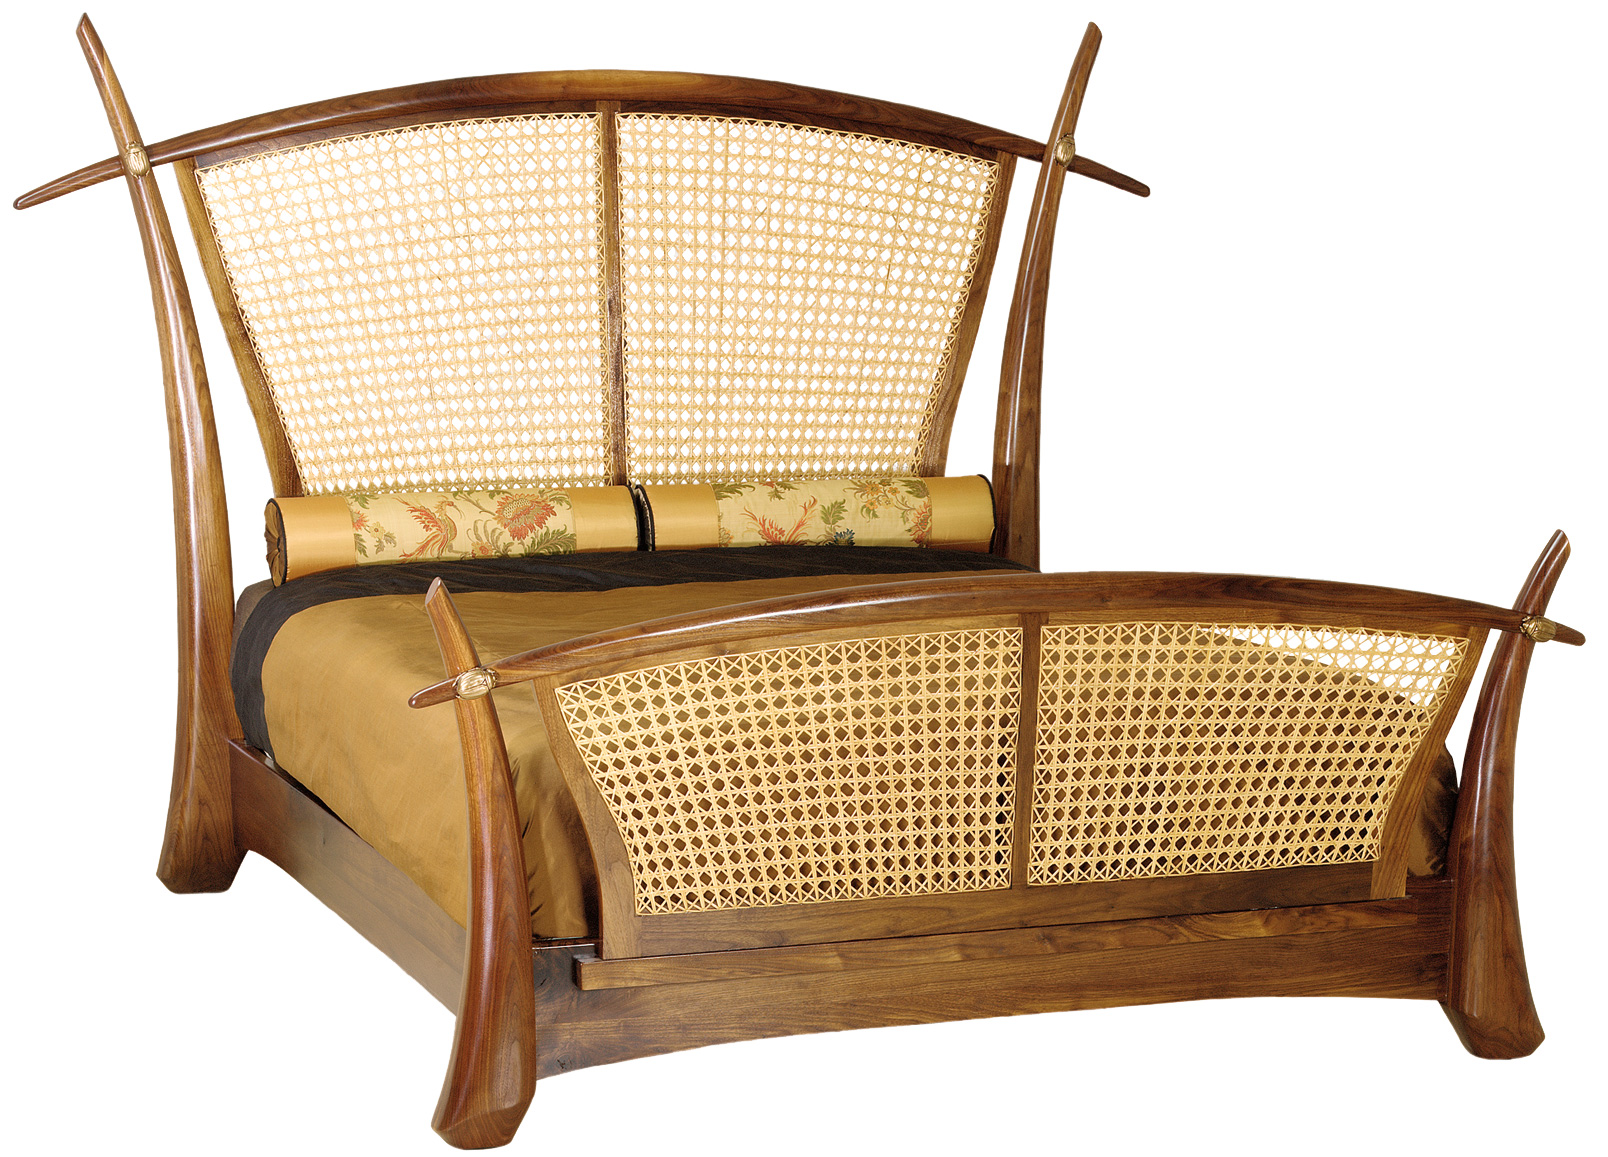 Rickshaw bed by Martin Pierce Hardware